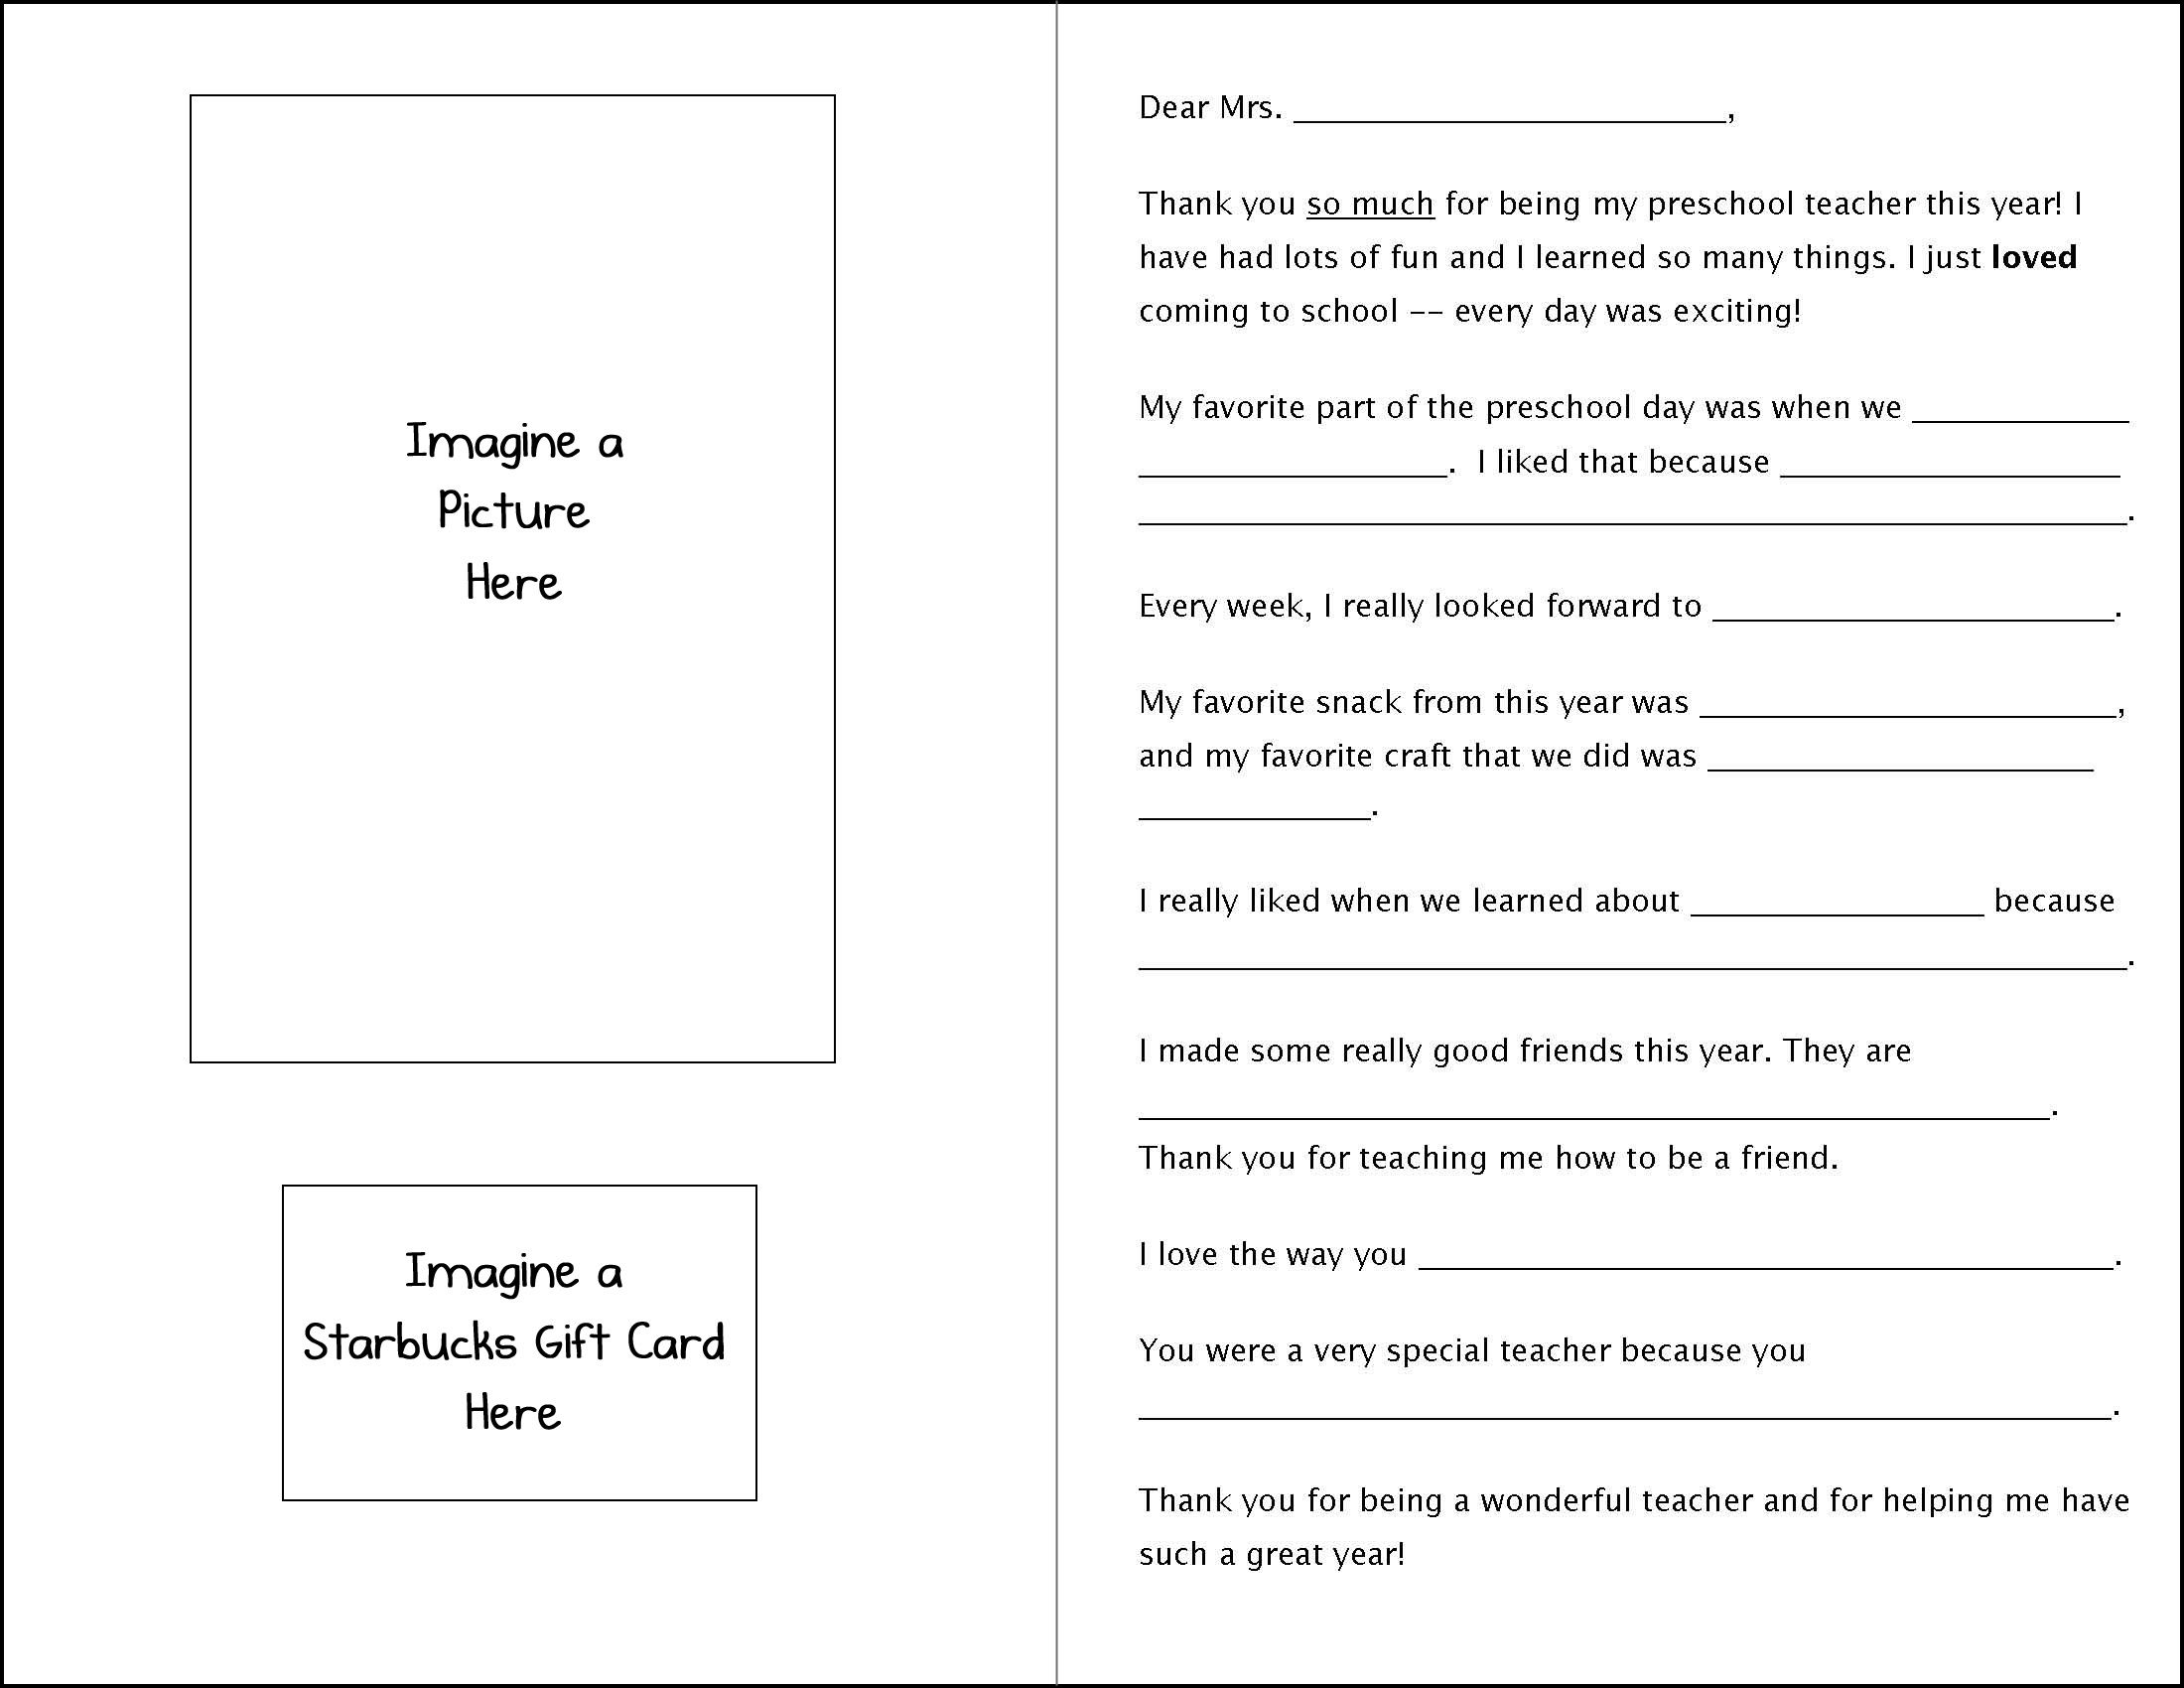 Fill In The Blank Teacher Appreciation Letter